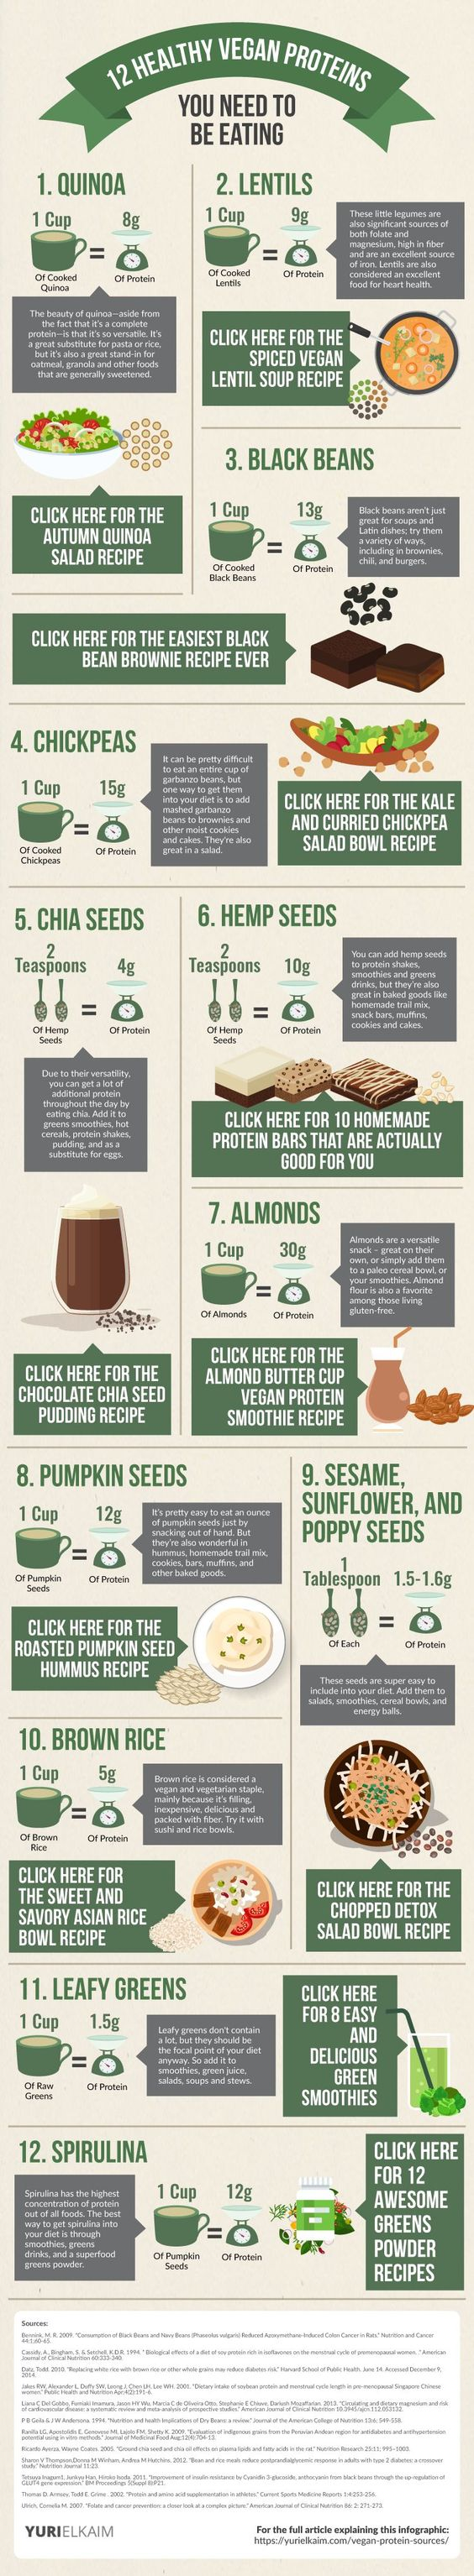 Even if you're not vegan, these 12 non-meat protein sources are the best of the best - and should be in your diet. Check them out... along with the recipes. | Yuri Elkaim